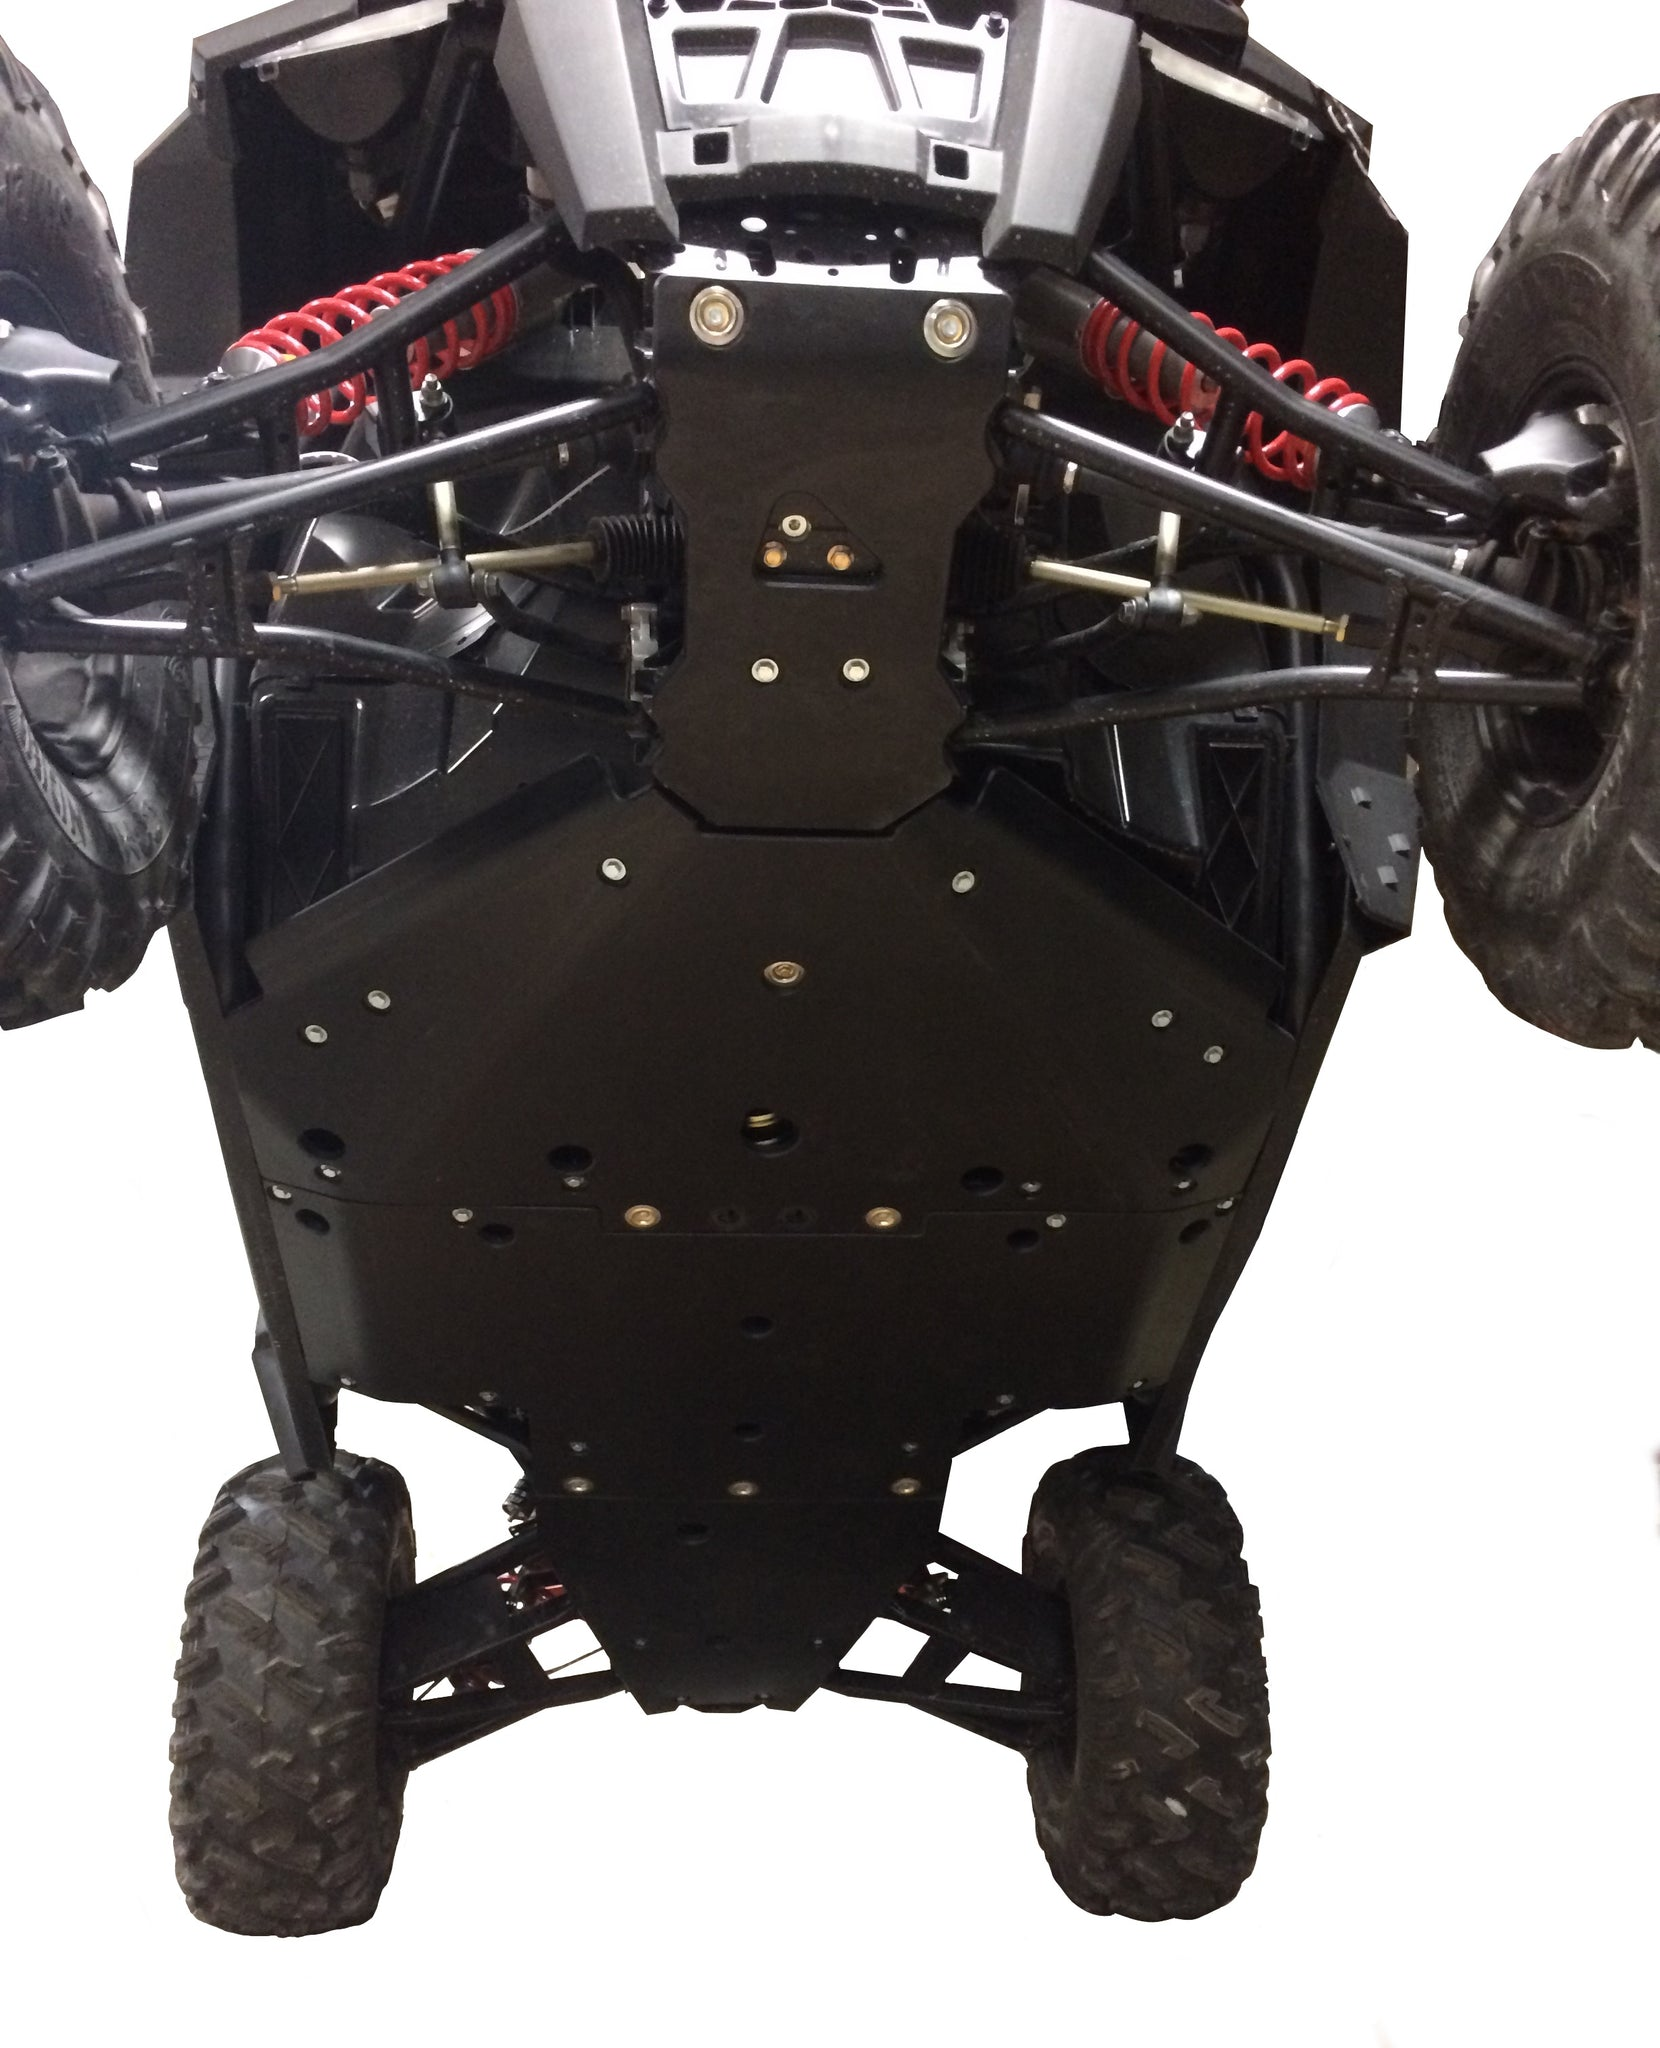 4-Piece Full Frame Skid Plate Set, Polaris RZR 900 Trail